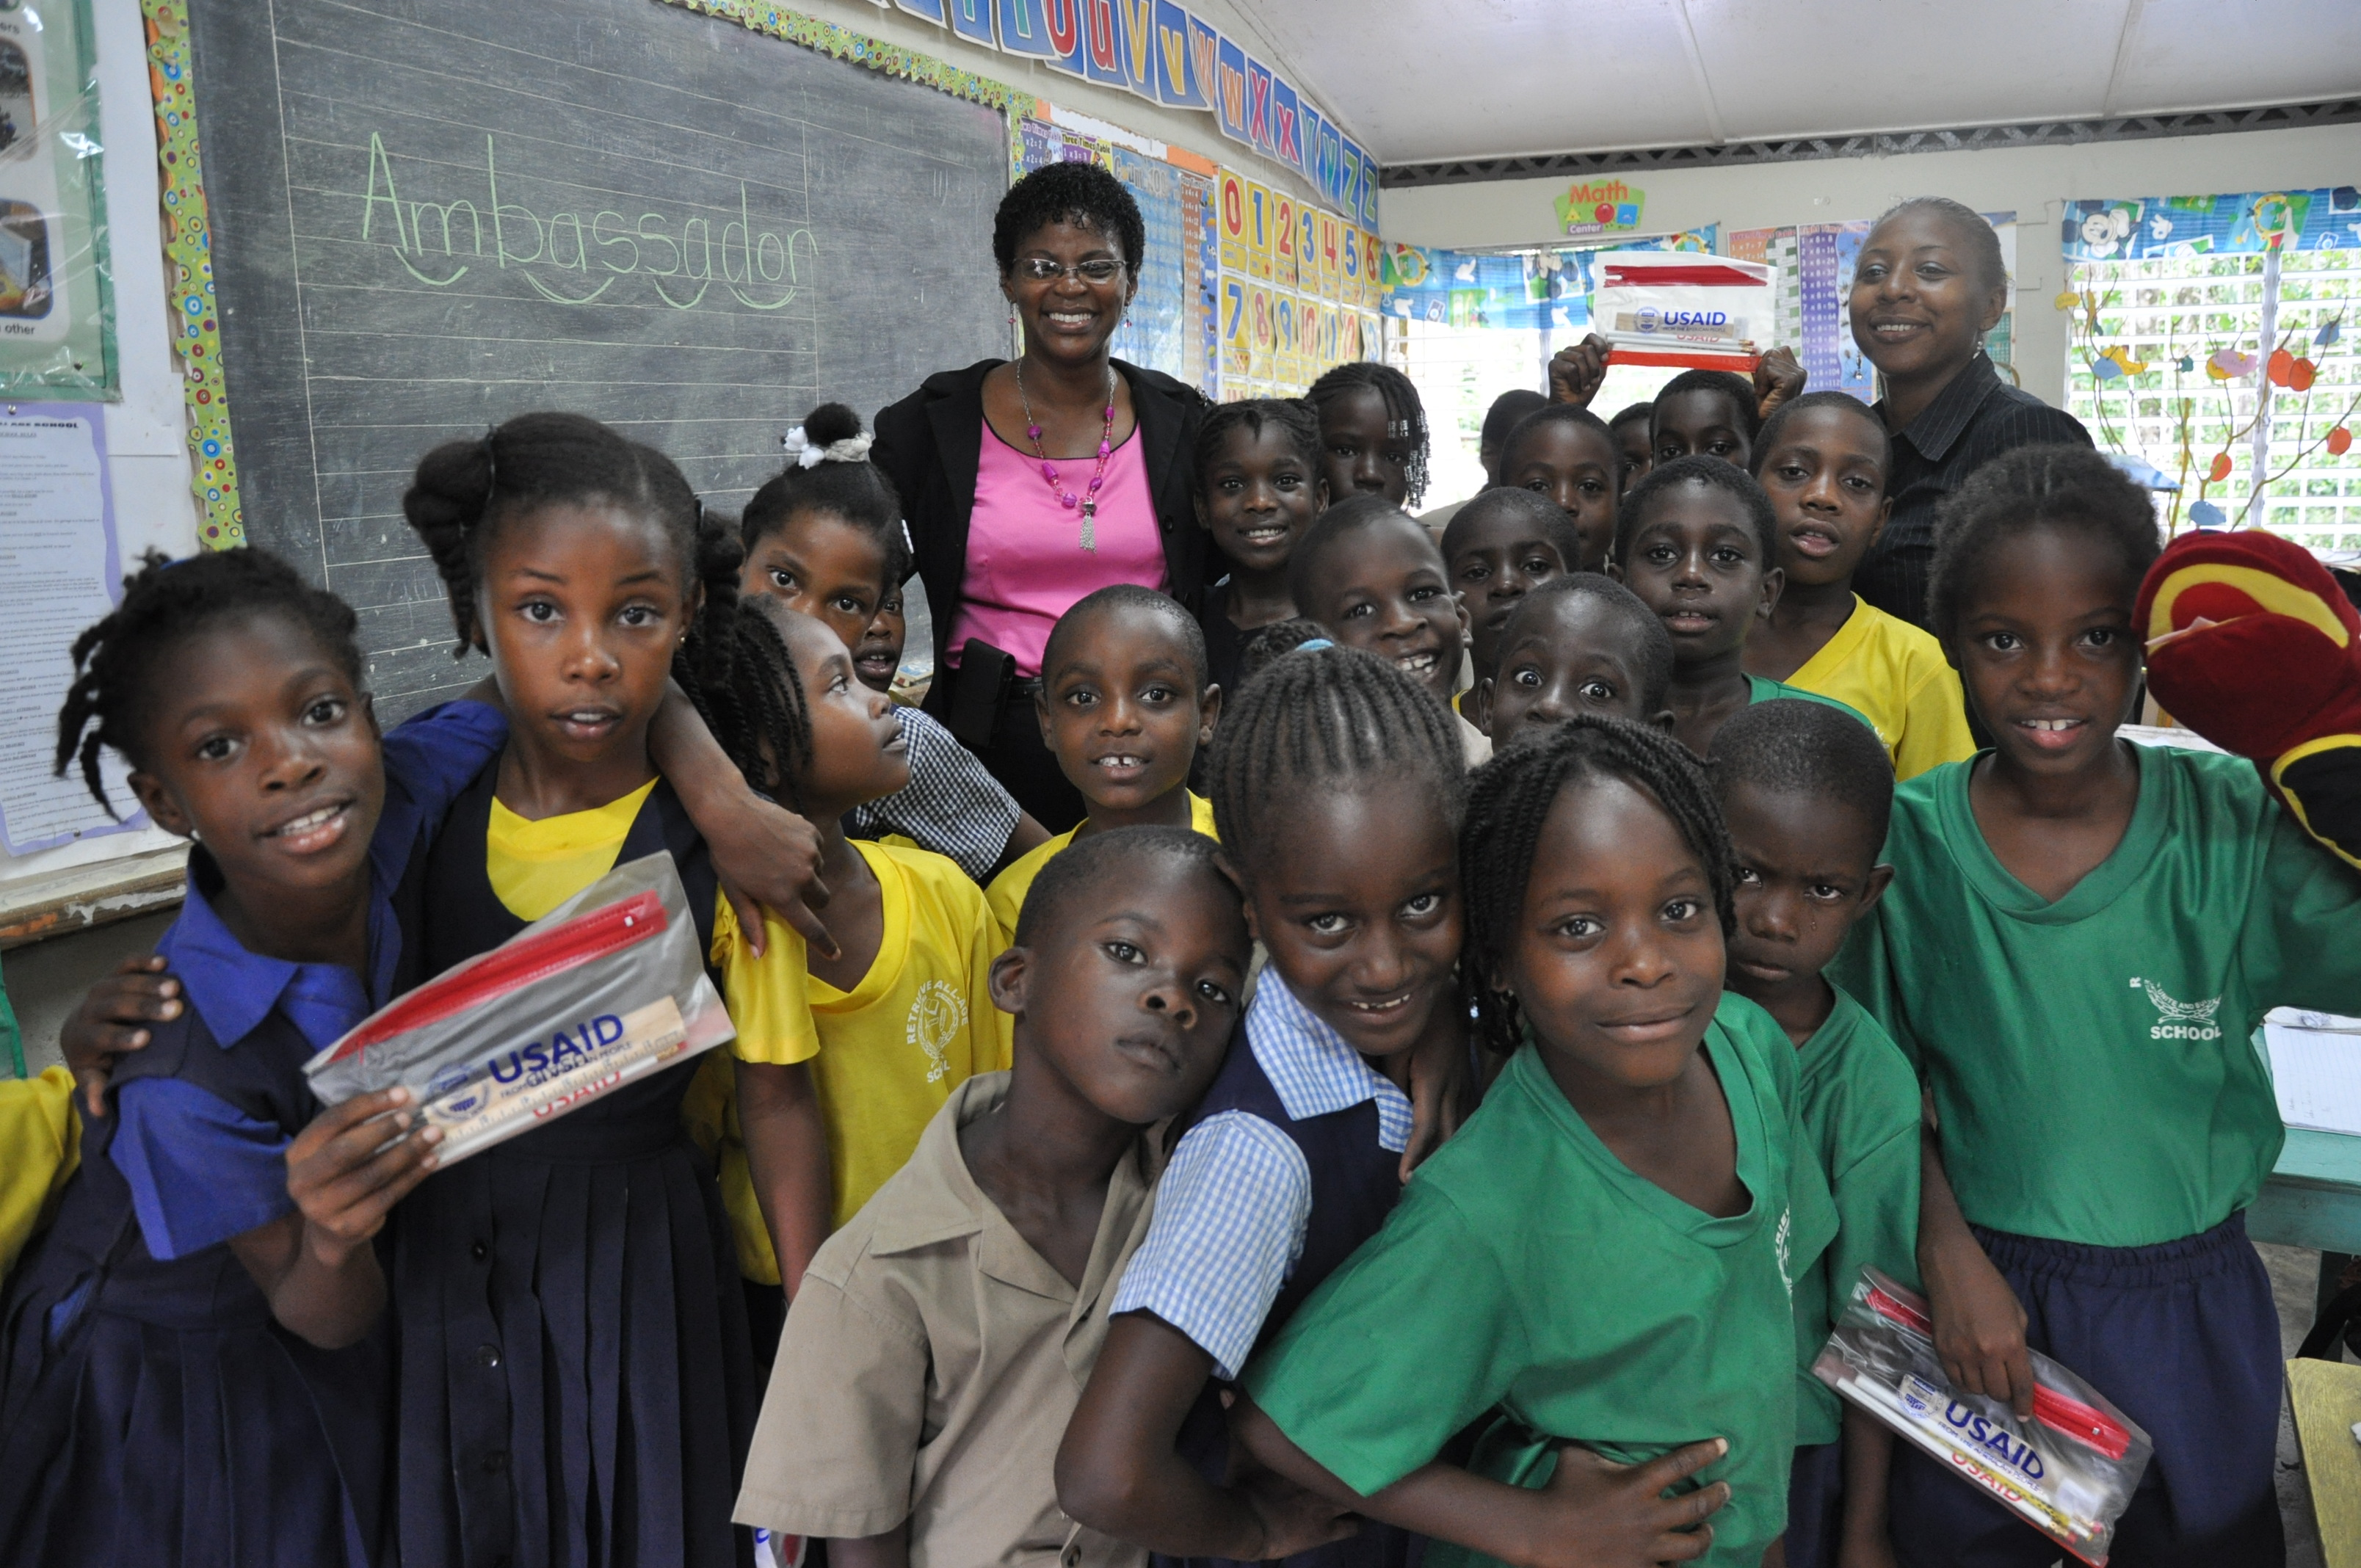 Impact of globalization on education in jamaica